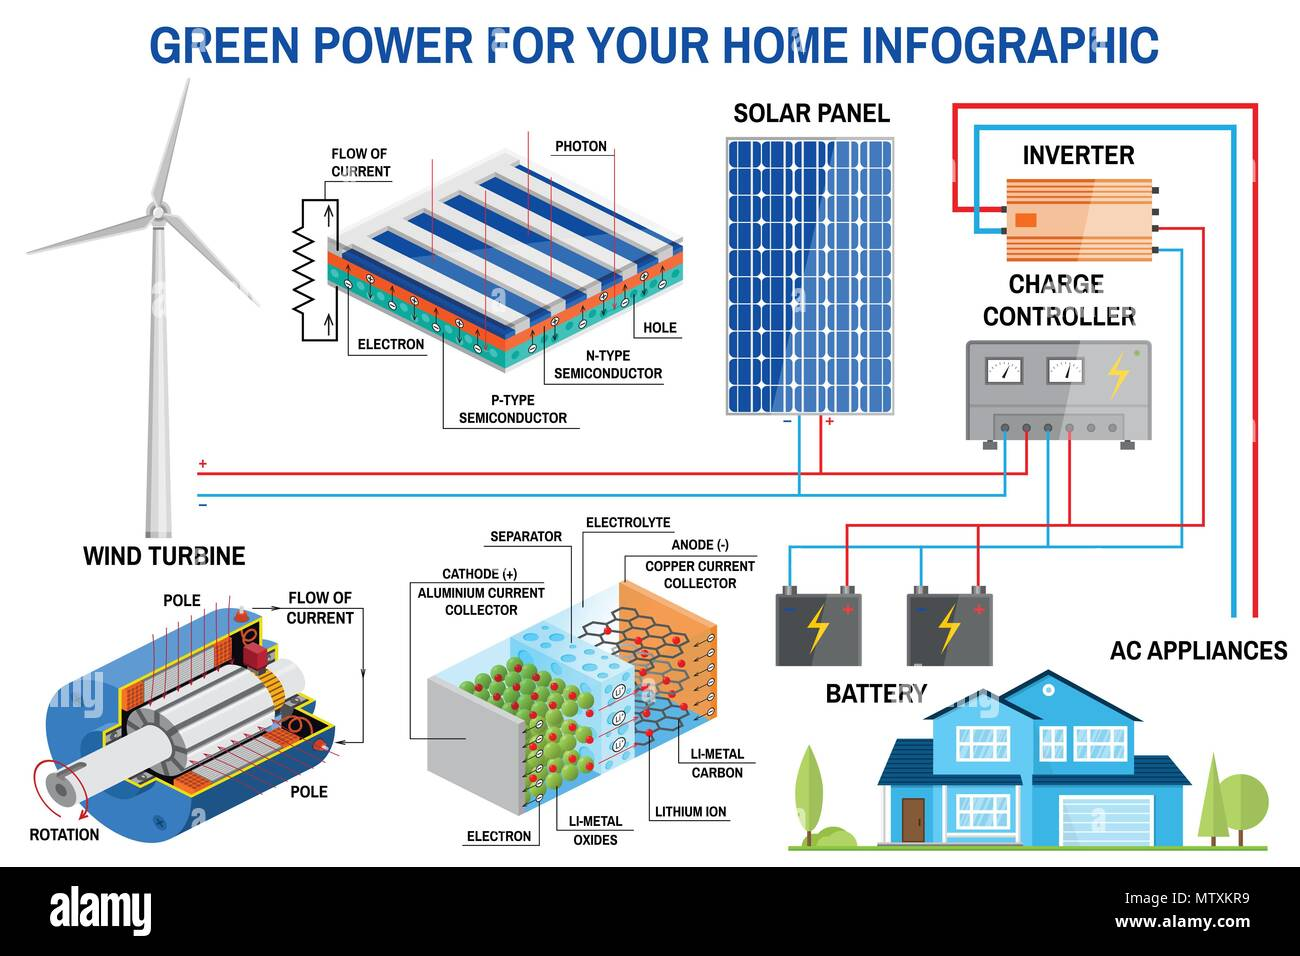 hight resolution of solar panel and wind power generation system for home infographic simplified diagram of an off